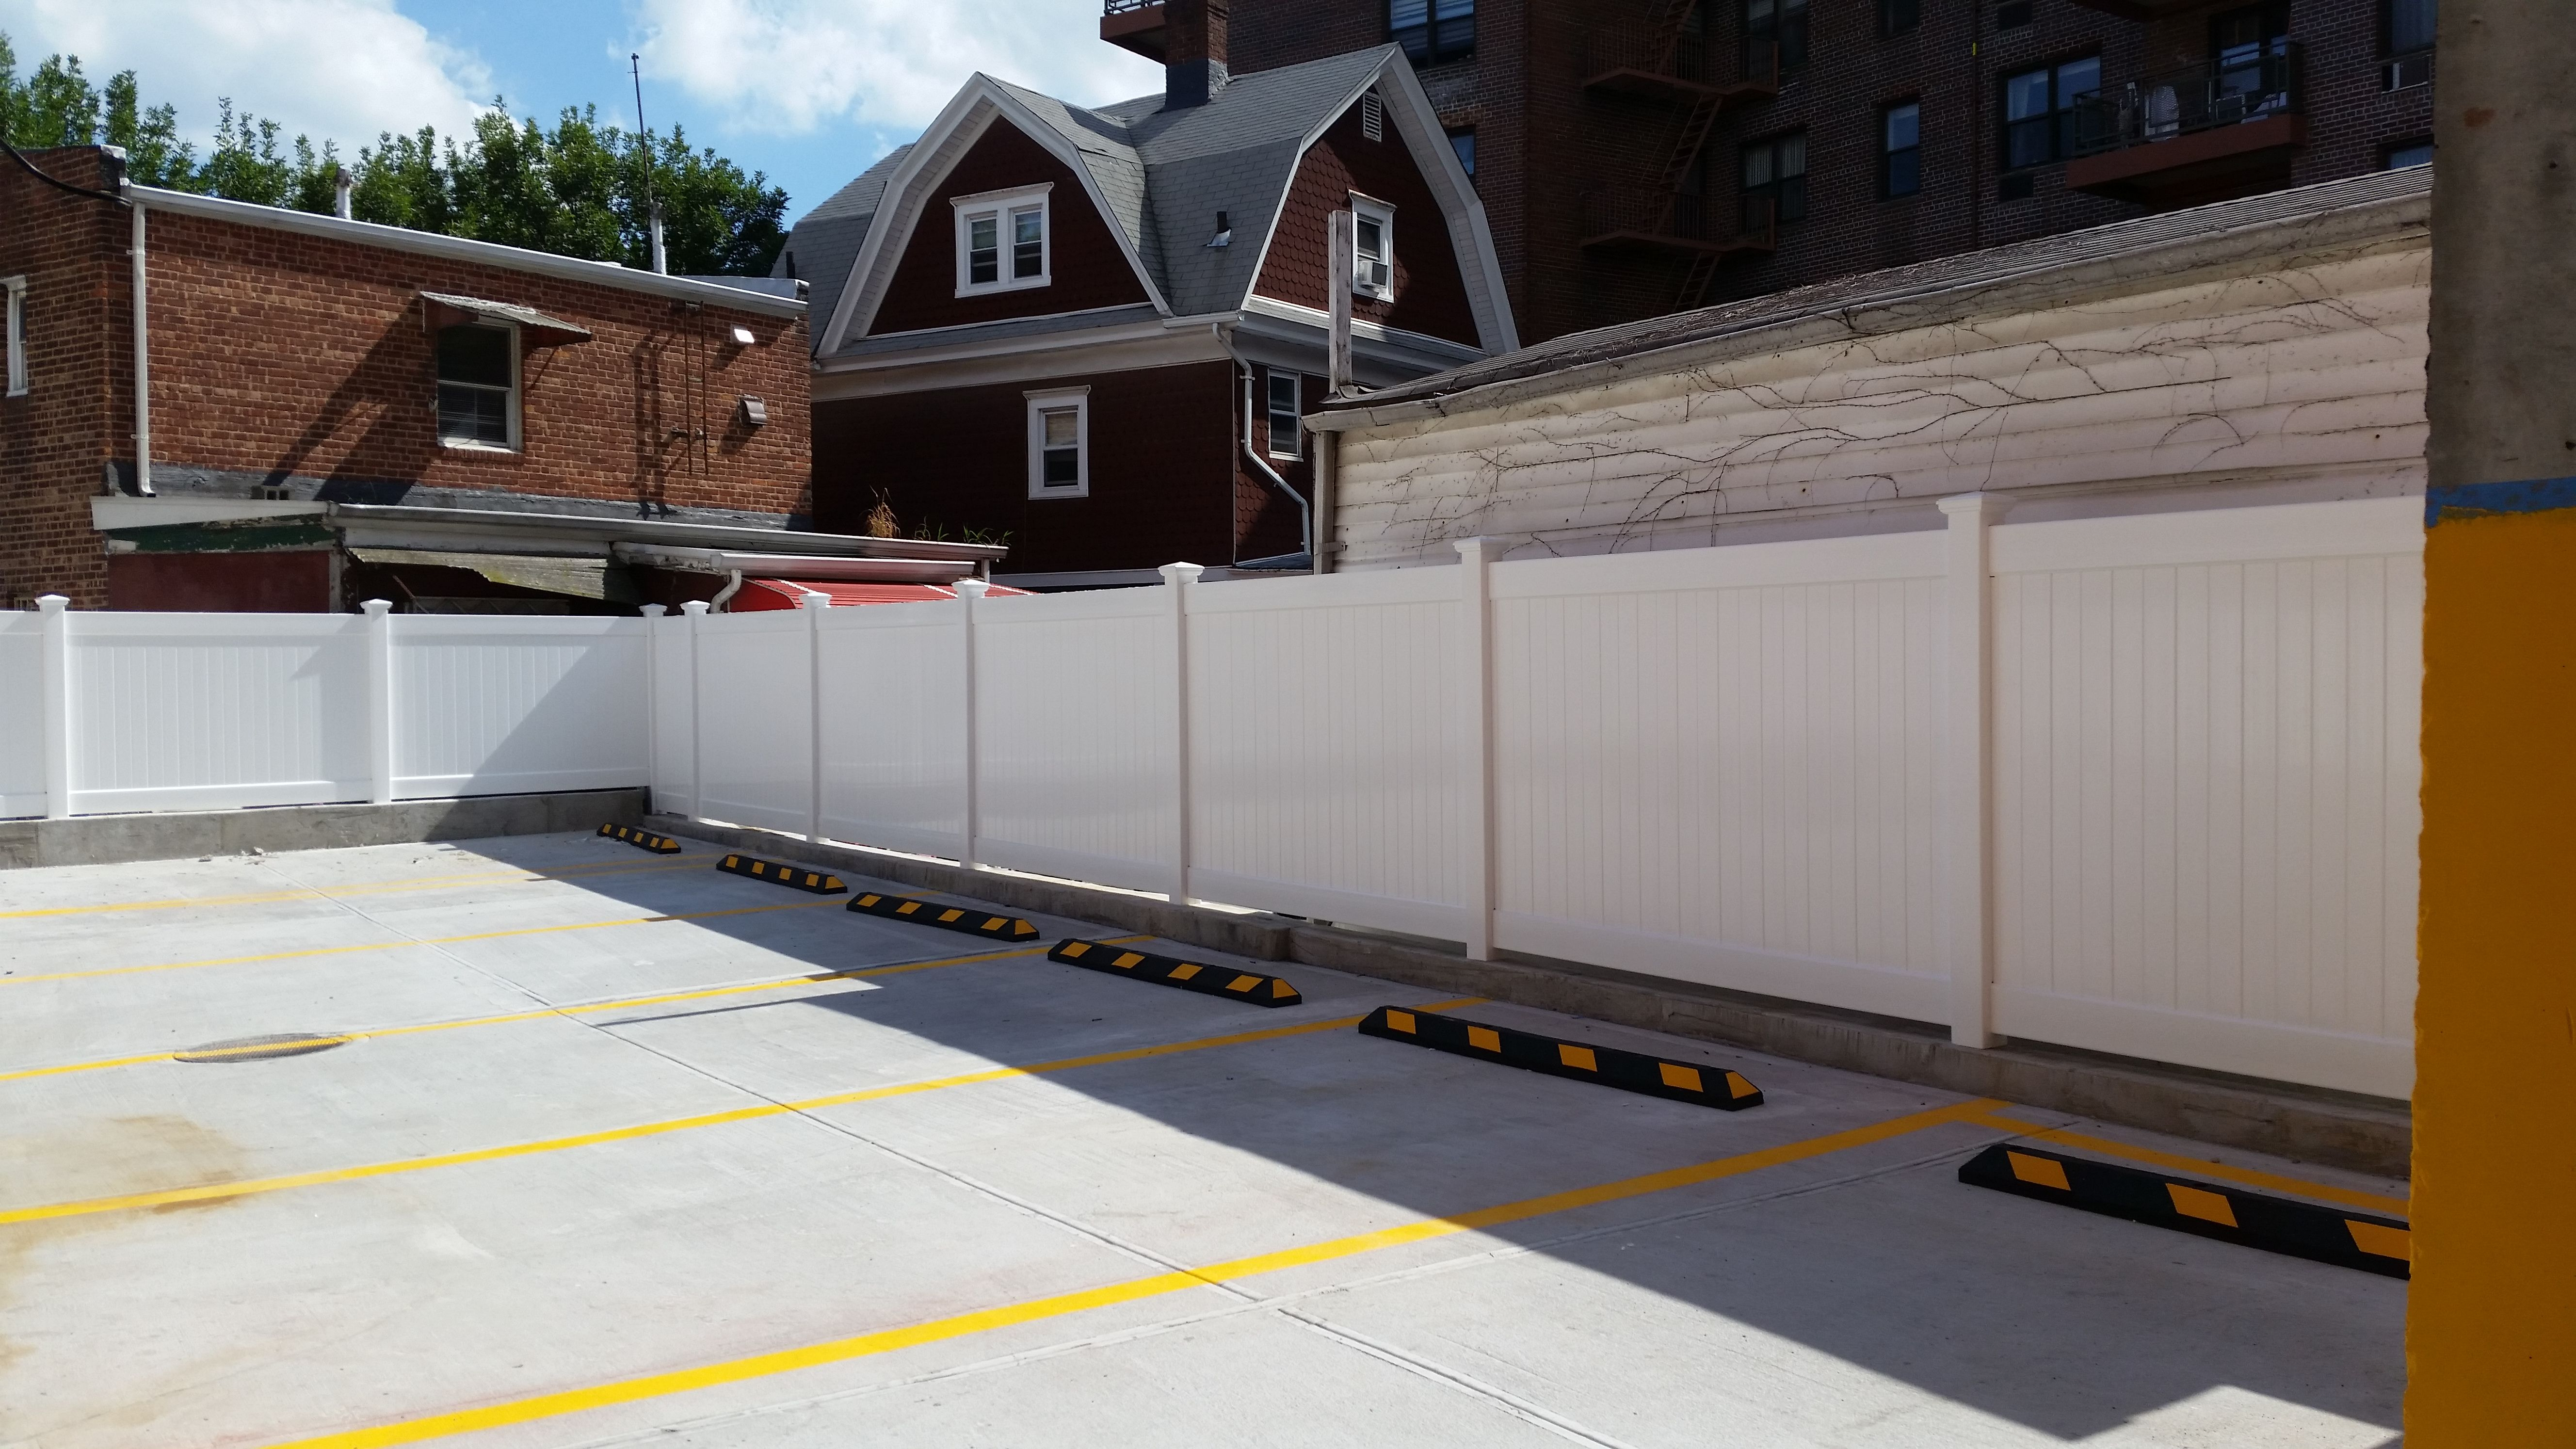 6 Infinity Solid Pvc Perimeter Fence Installed At A Ground Level Parking Garage In Elmhurst Queens Nyc By Liberty Fence Gates And Railings Fence Pool Fence